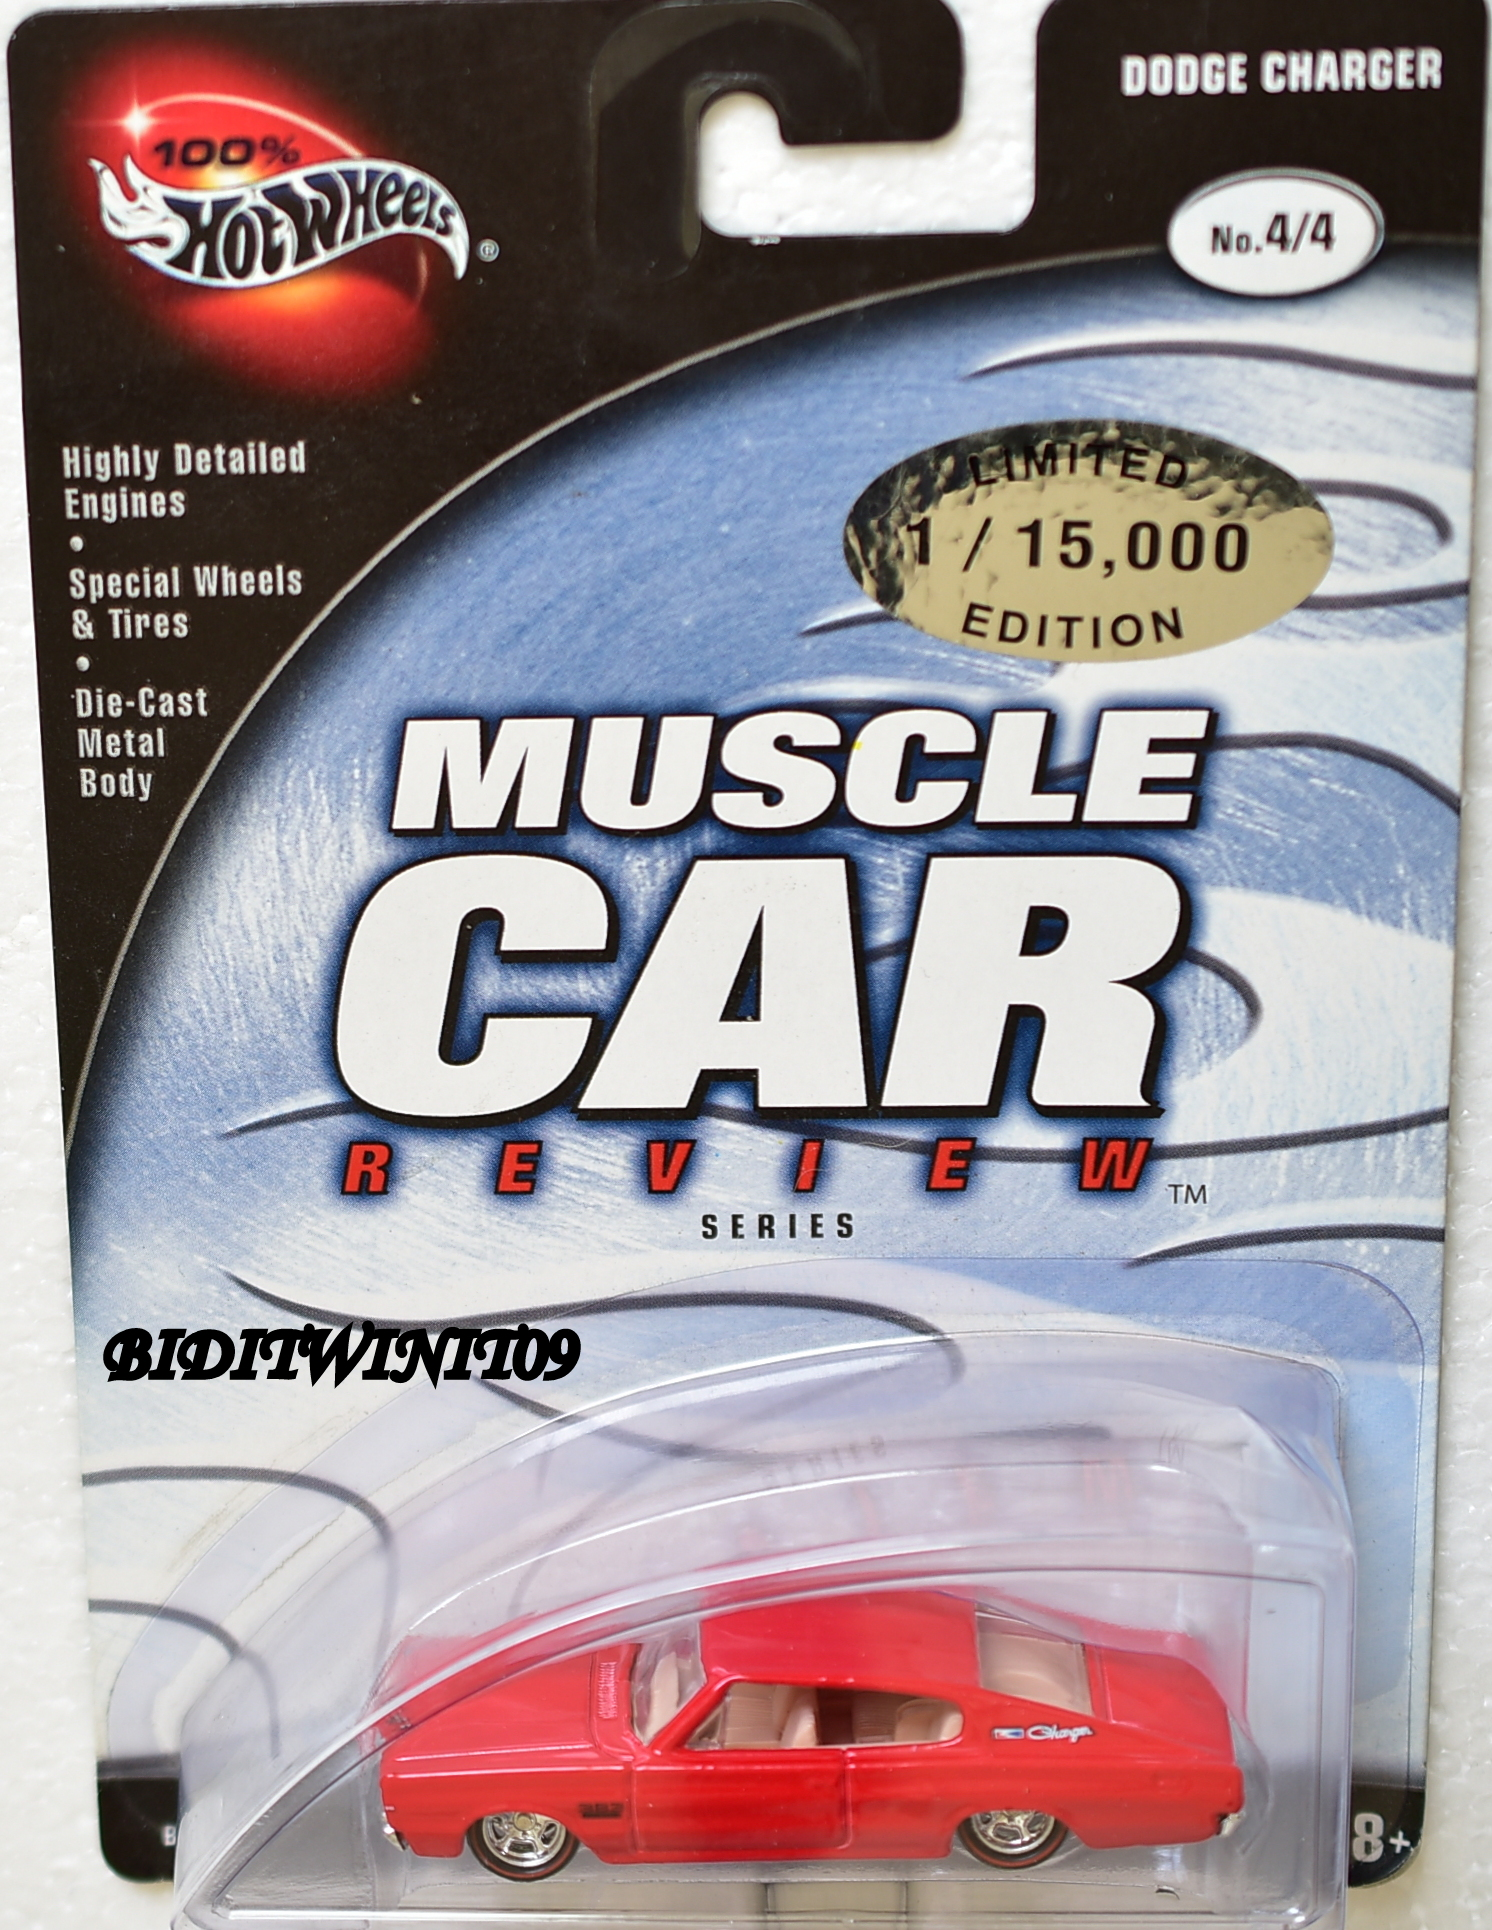 100% HOT WHEELS MUSCLE CAR REVIEW DODGE CHARGER #4/4